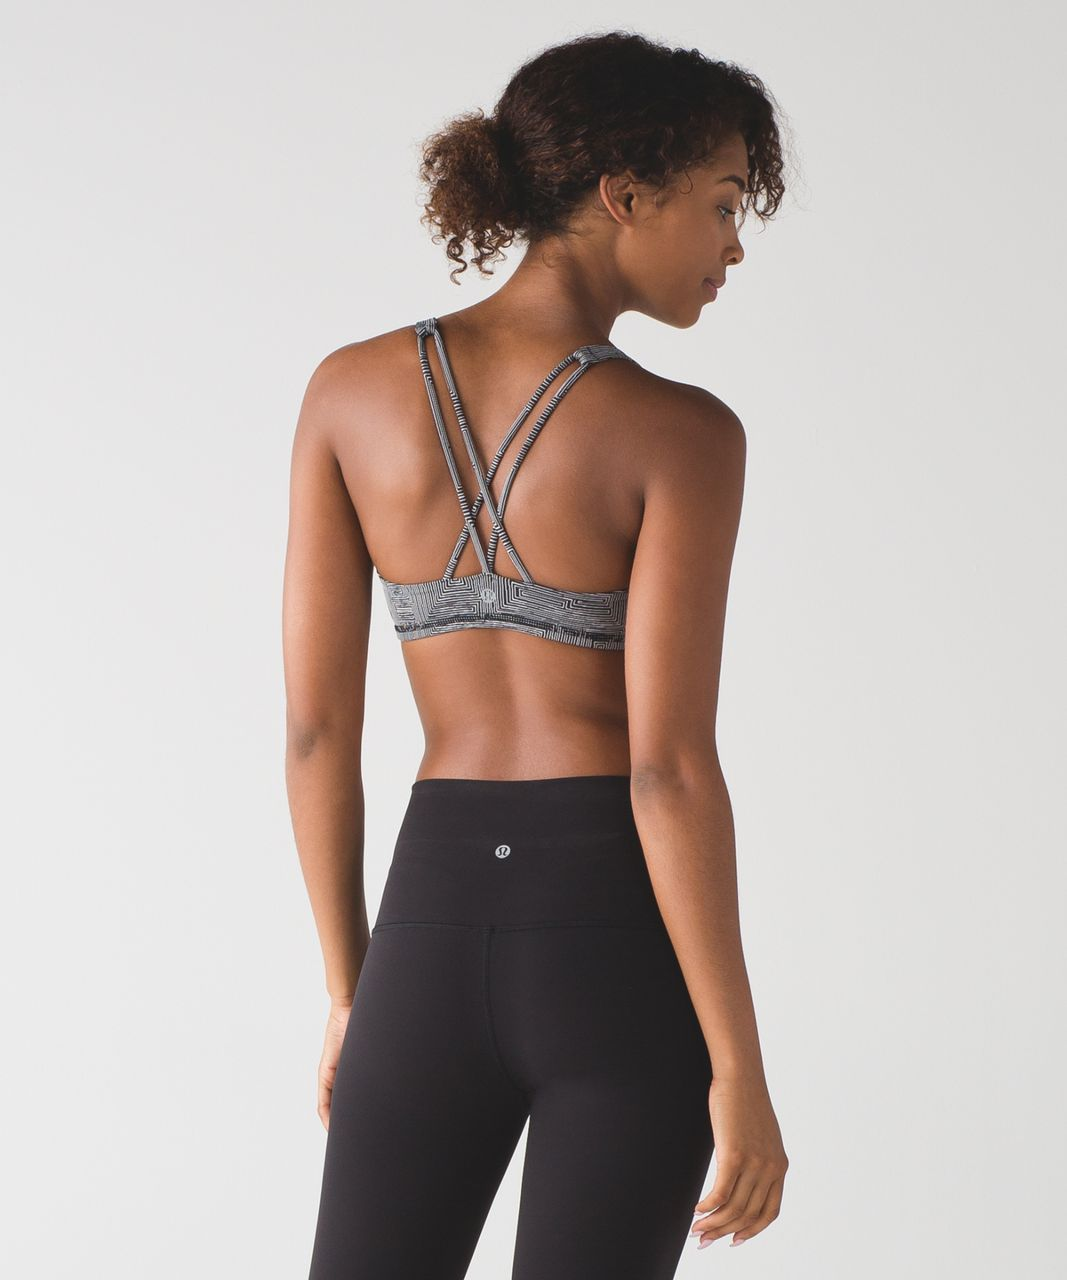 Lululemon Free To Be Bra - Maze Jacquard White Black